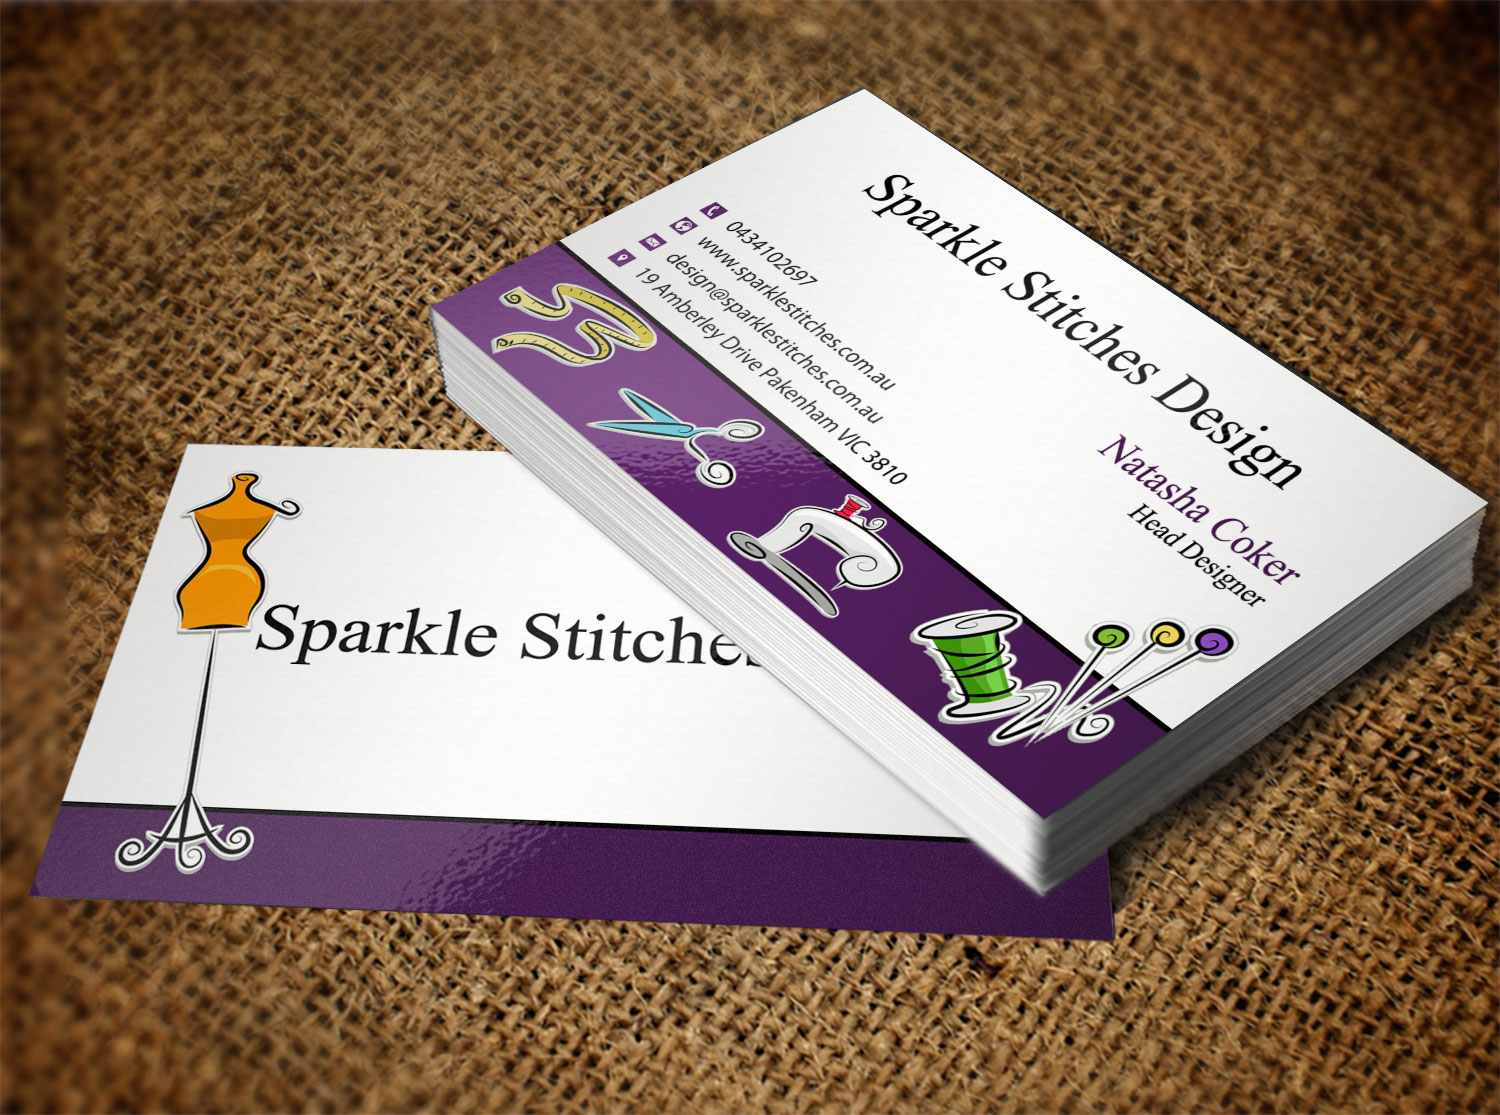 Embroidery Business Card Design For M2m Business Property Pty Ltd